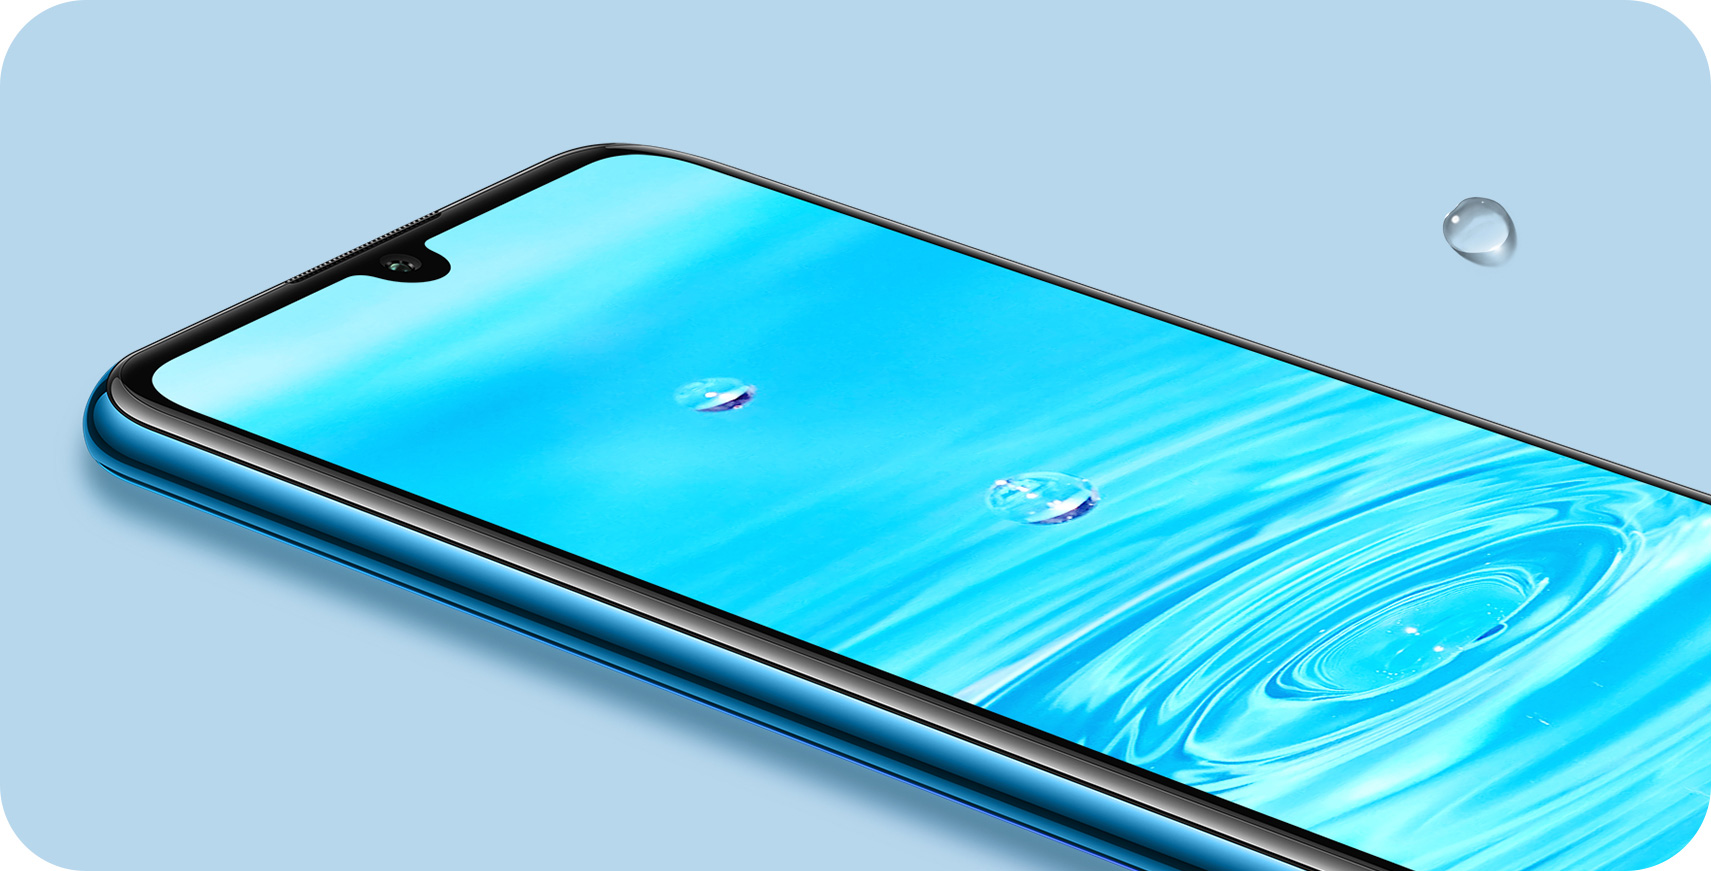 HUAWEI P30 lite New Edition Dewdrop Display